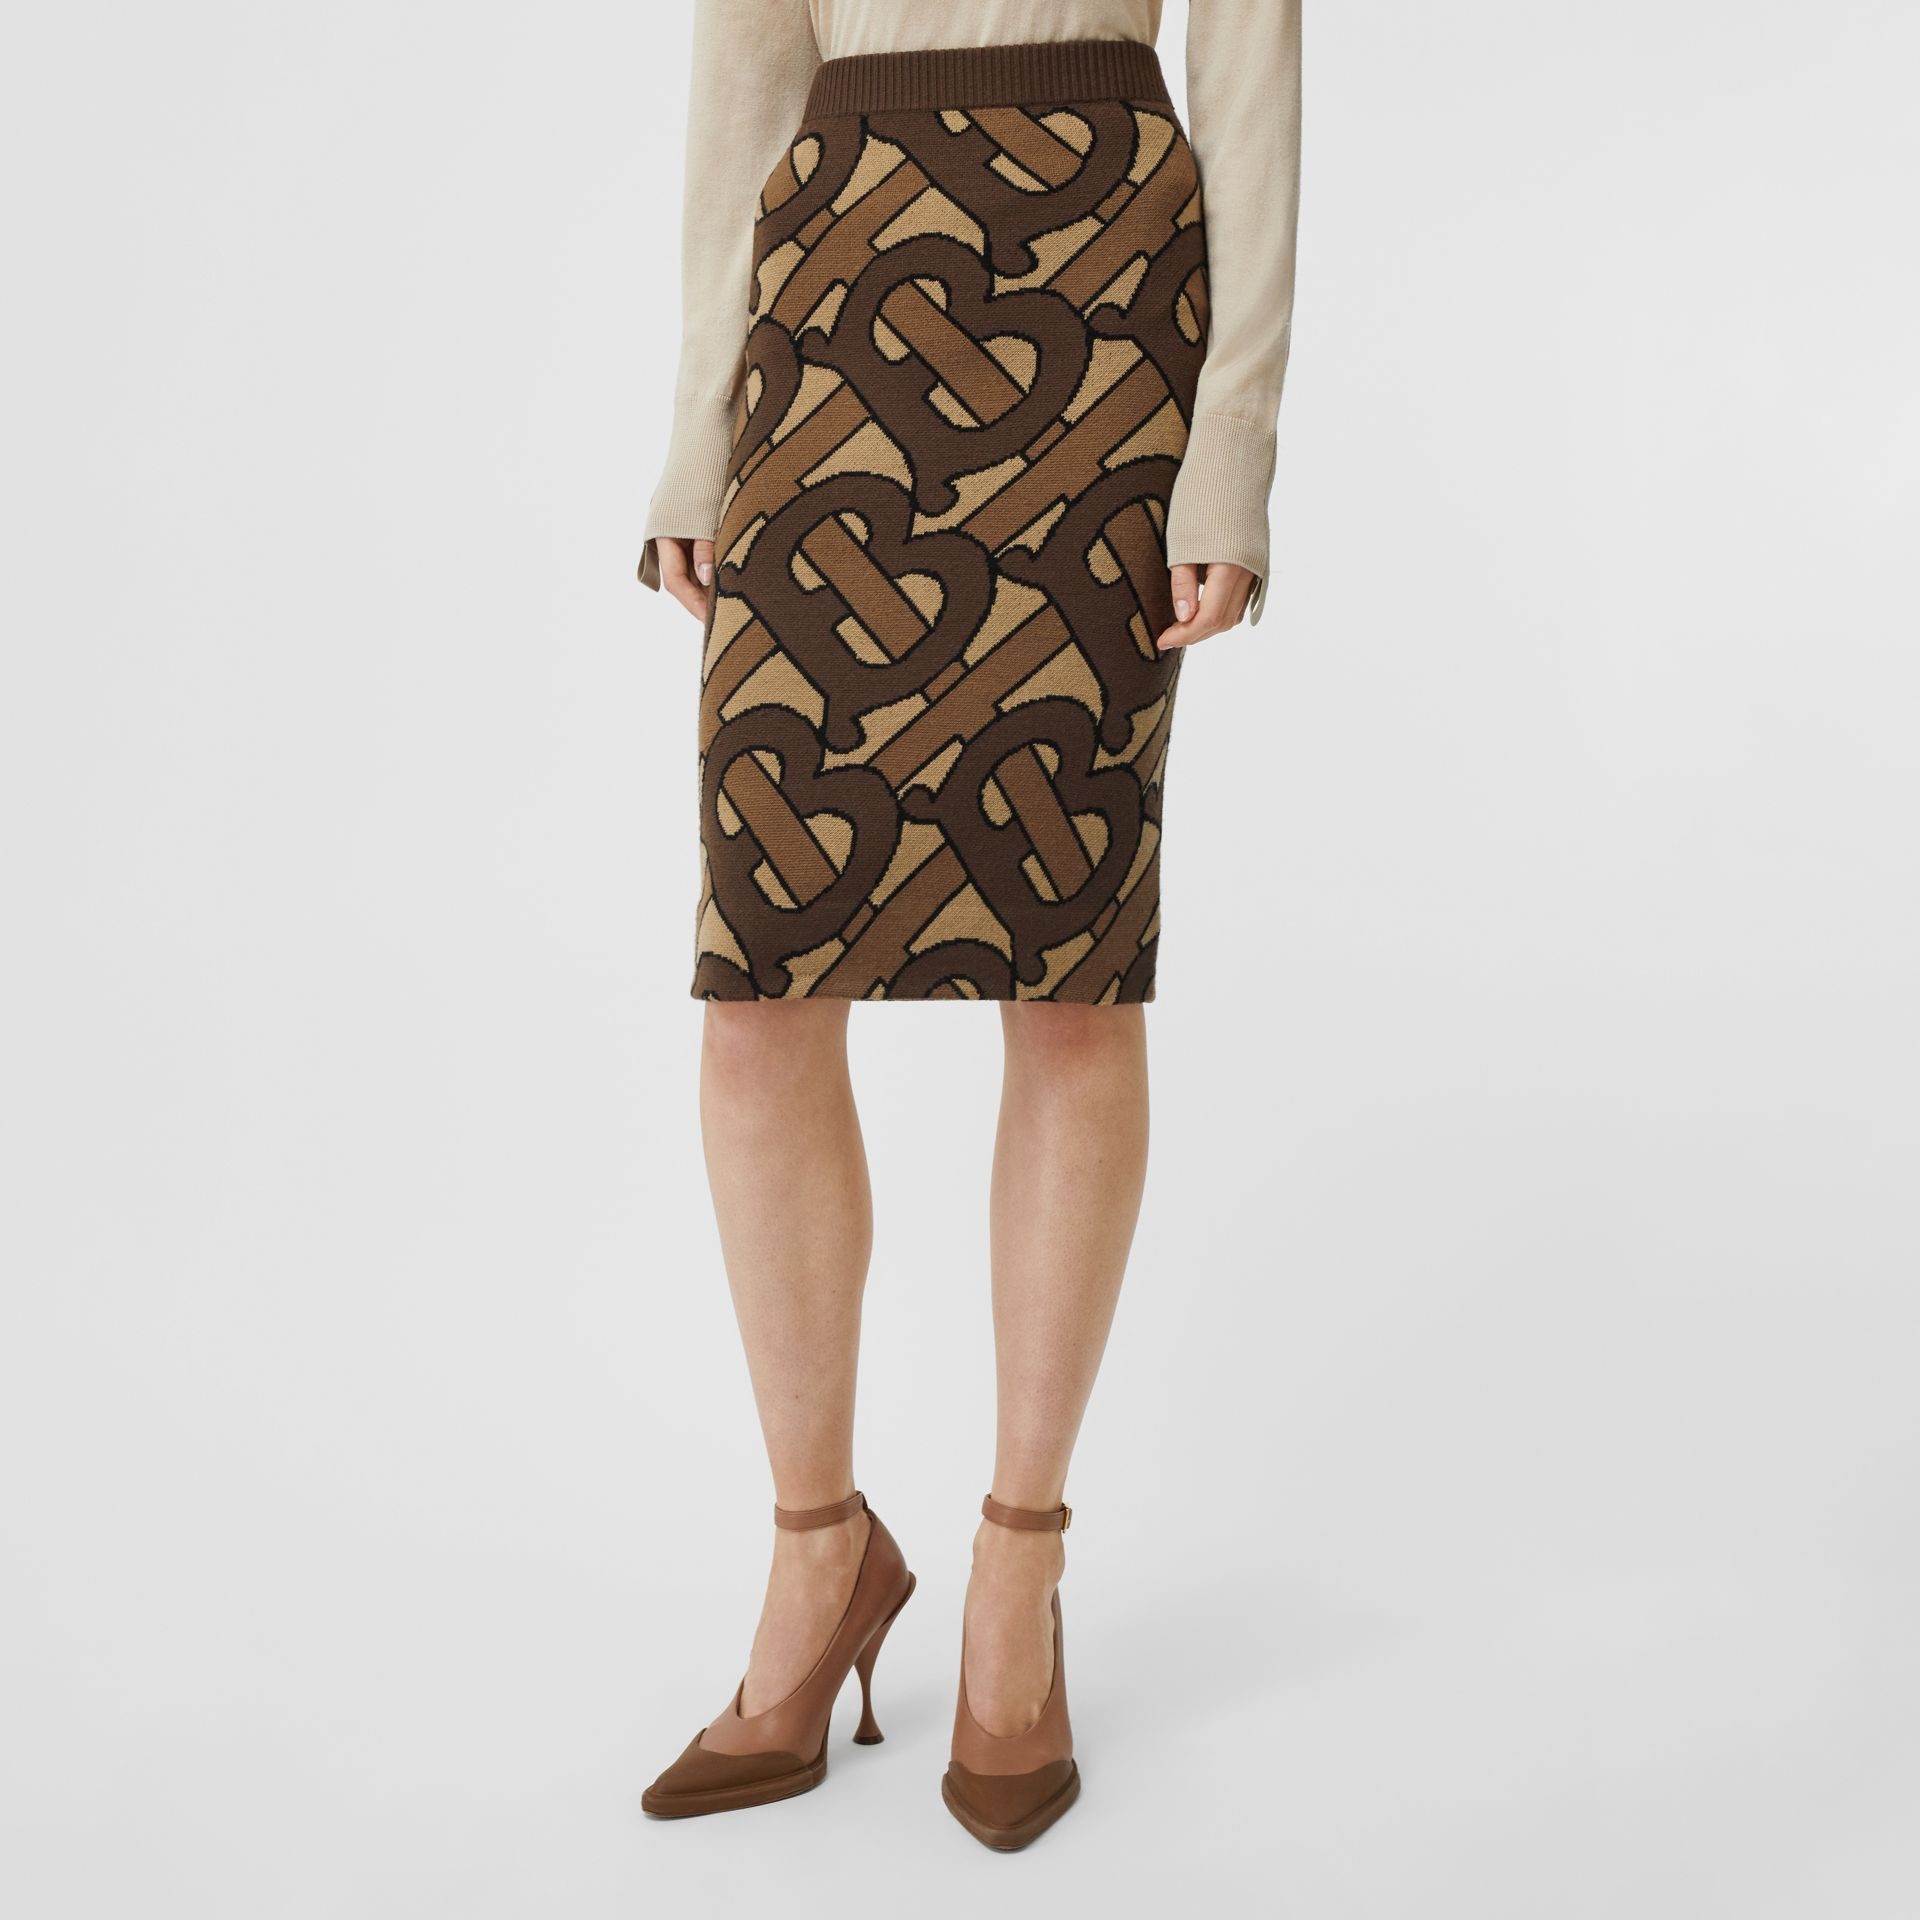 Monogram Intarsia Wool Pencil Skirt in Bridle Brown - Women | Burberry - gallery image 5